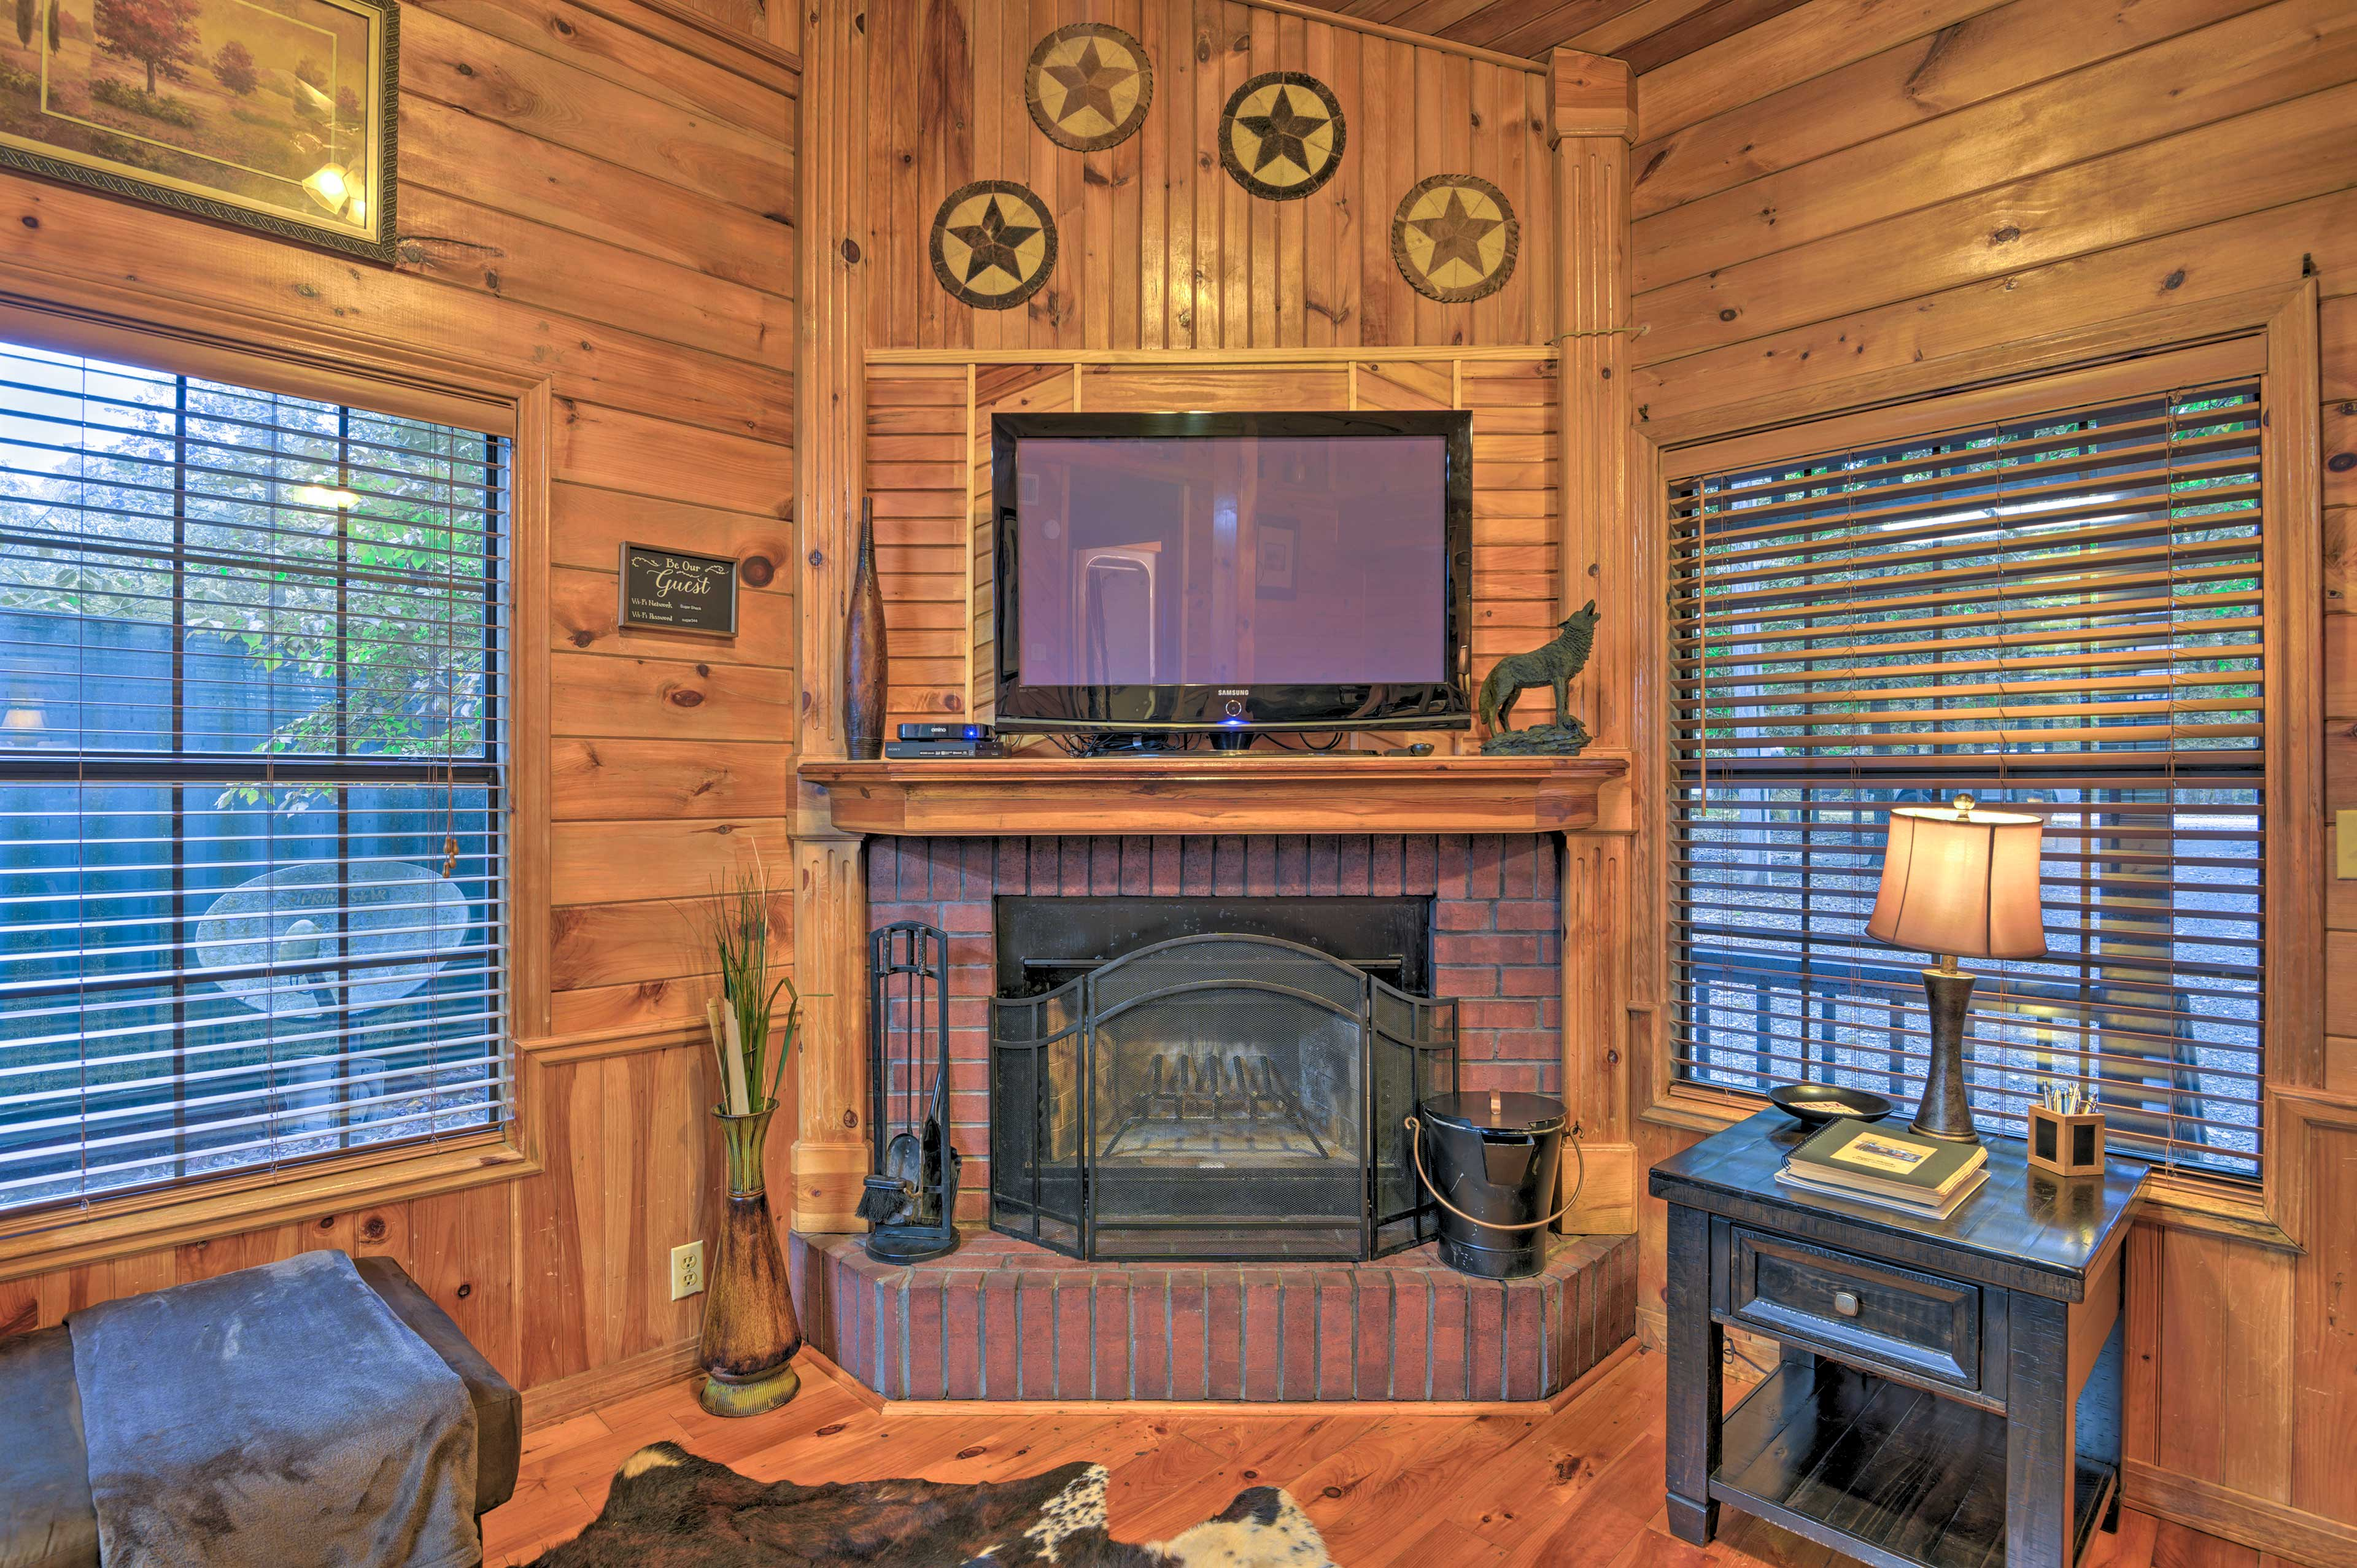 Spend cozy evenings in front of the wood-burning fireplace and Smart TV.